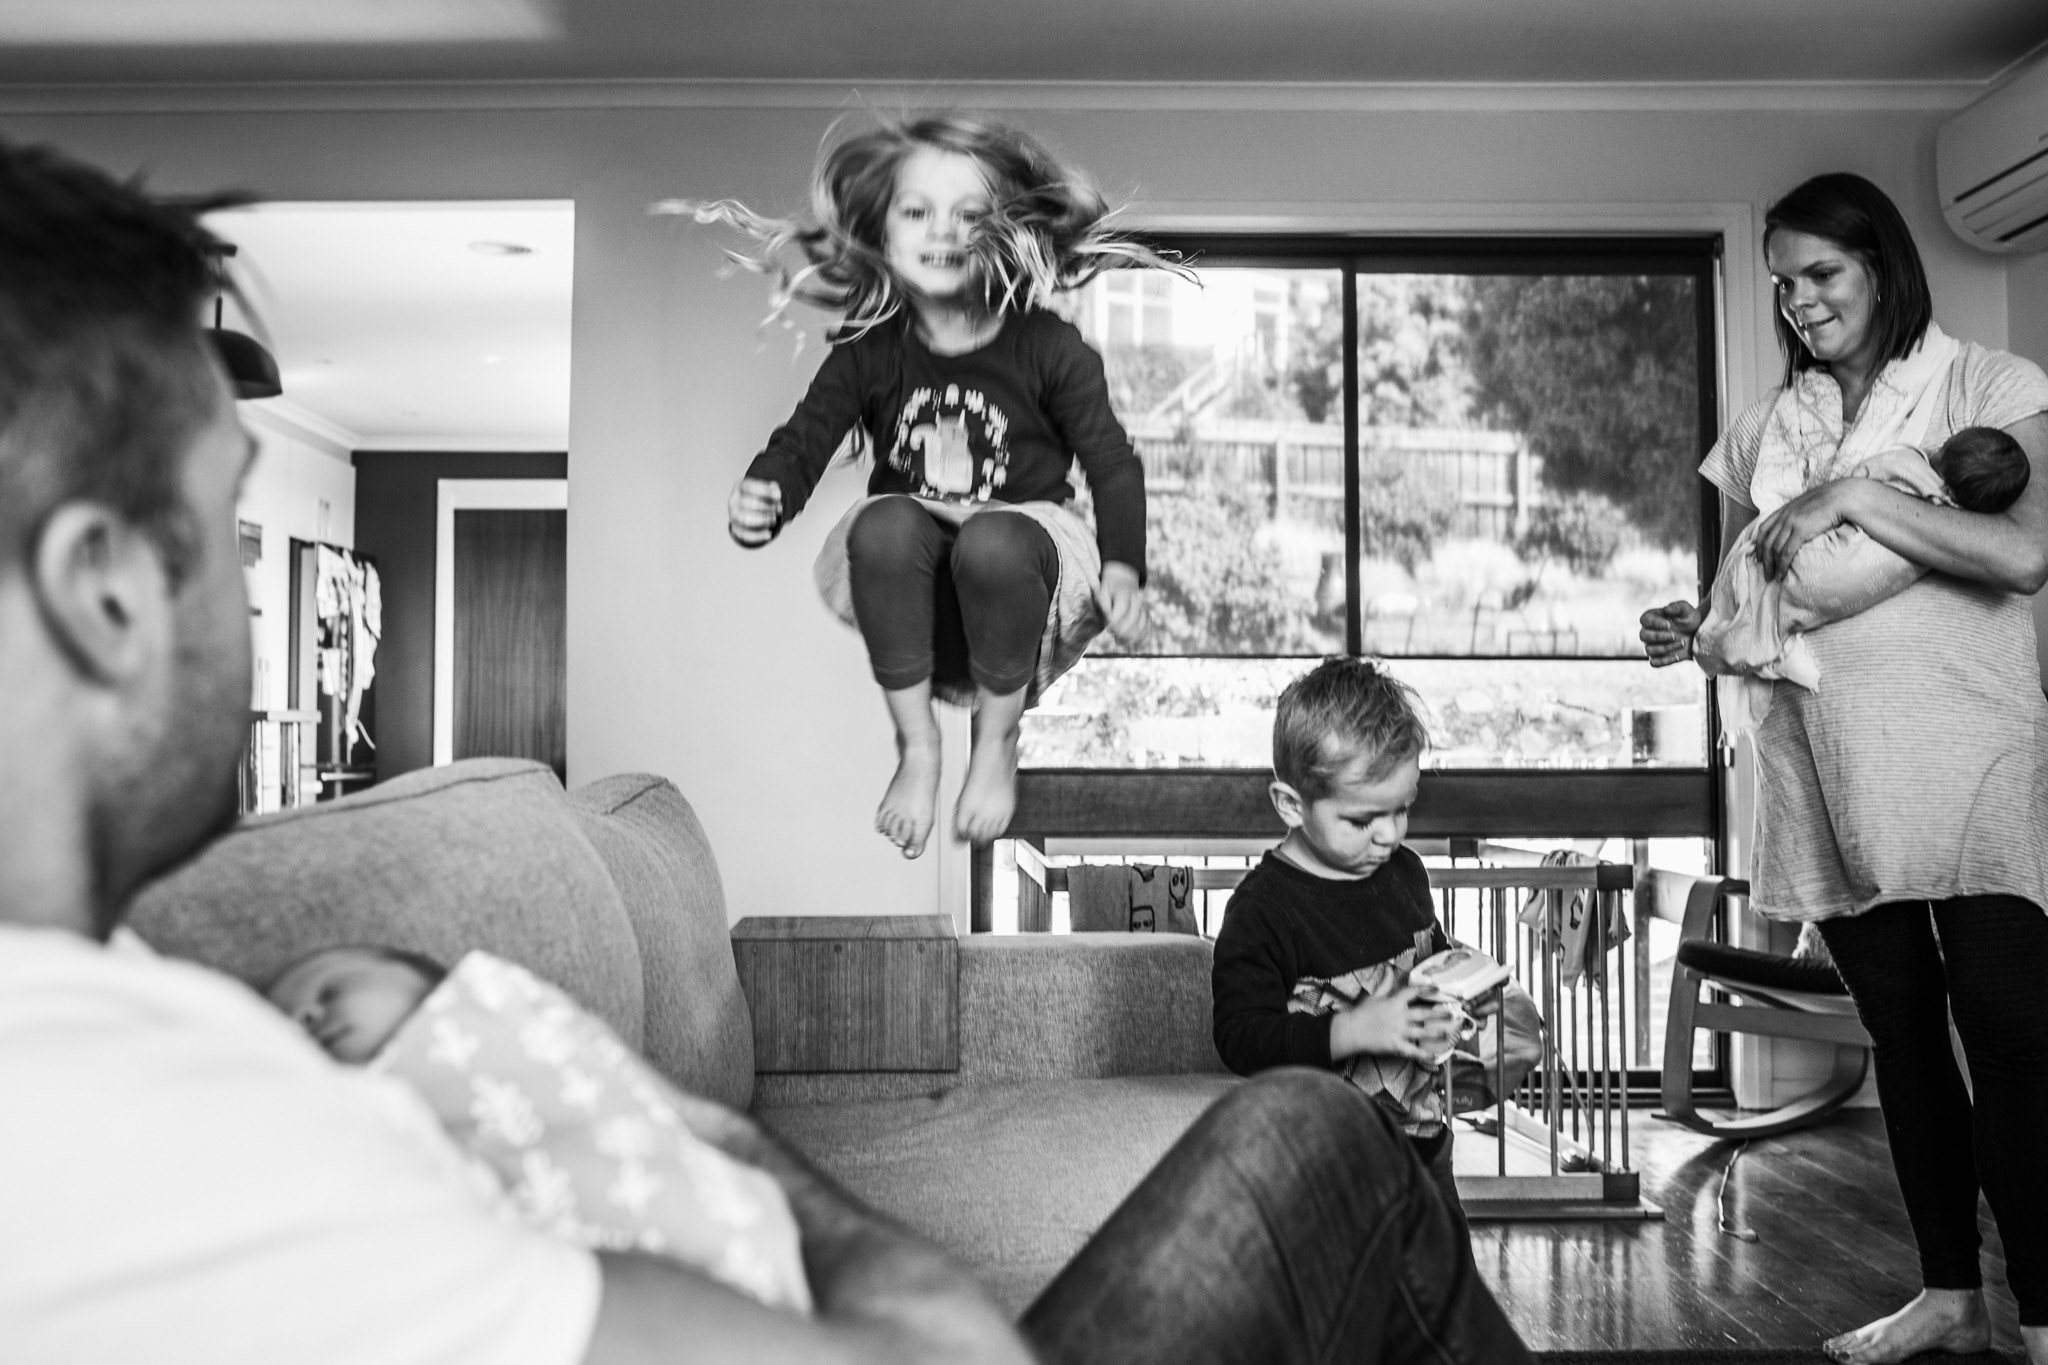 little girl jumping on couch motion blur (1 of 1).jpg